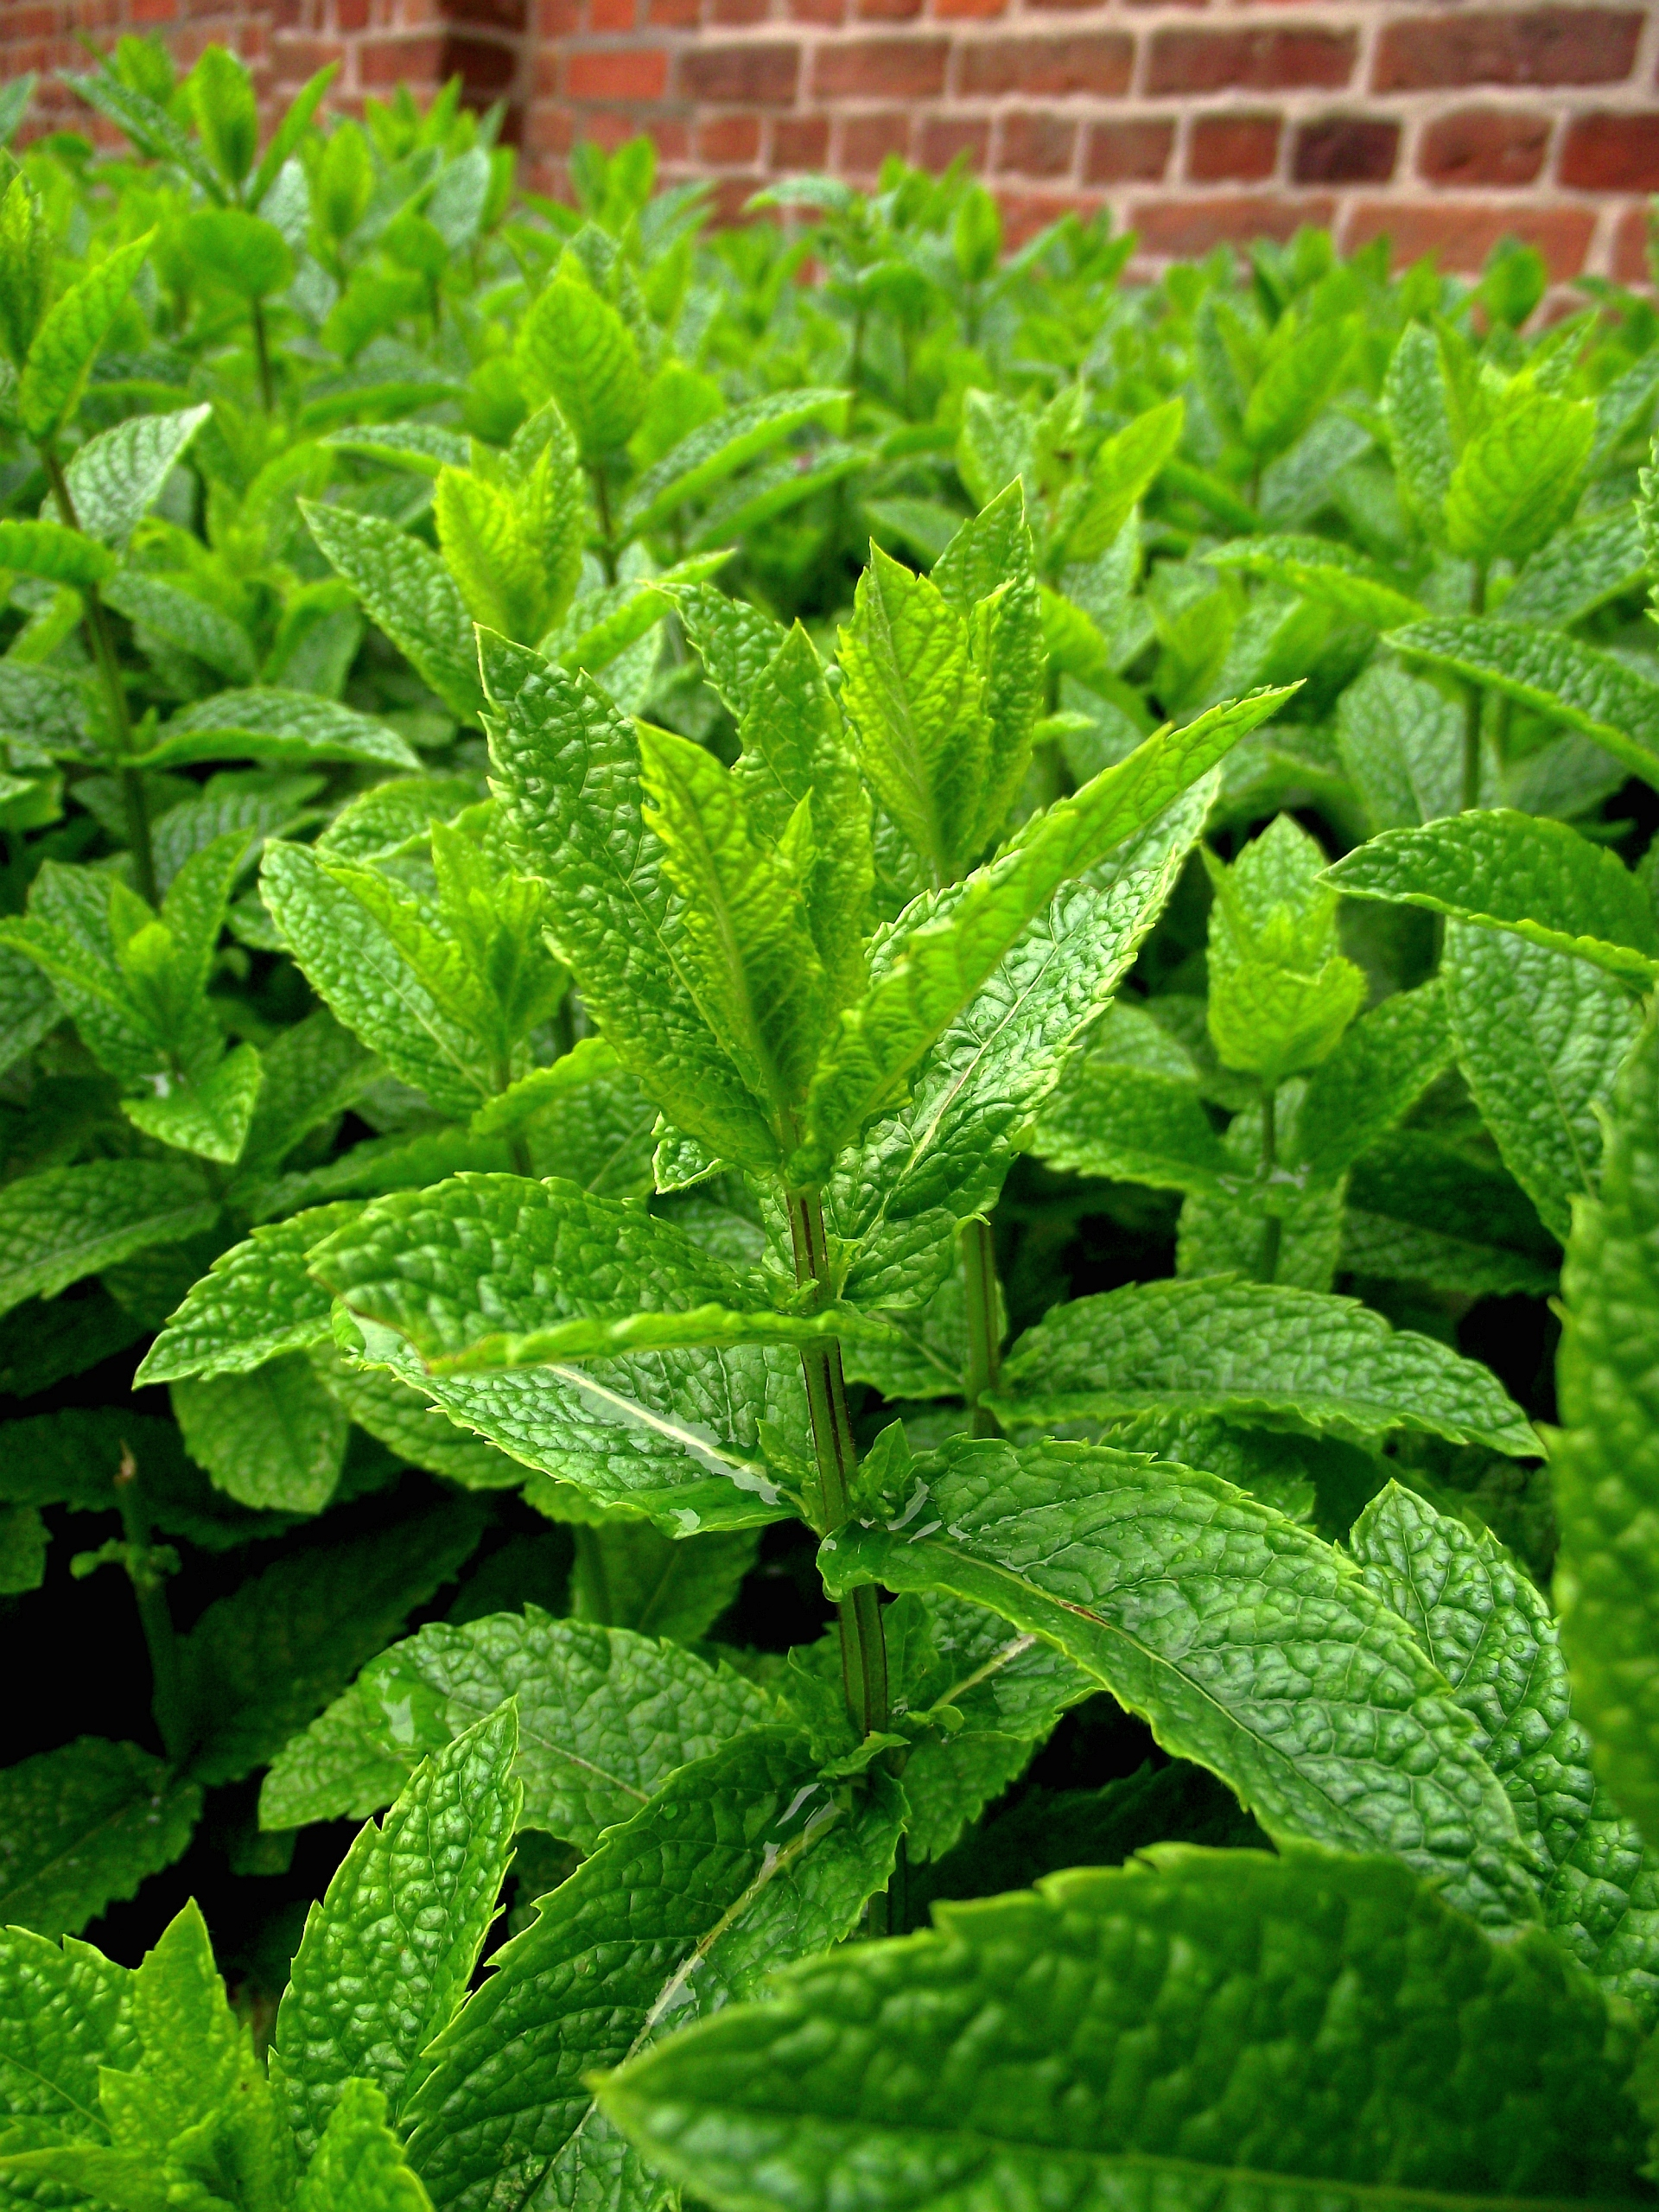 The peppermint mentha piperita history essay